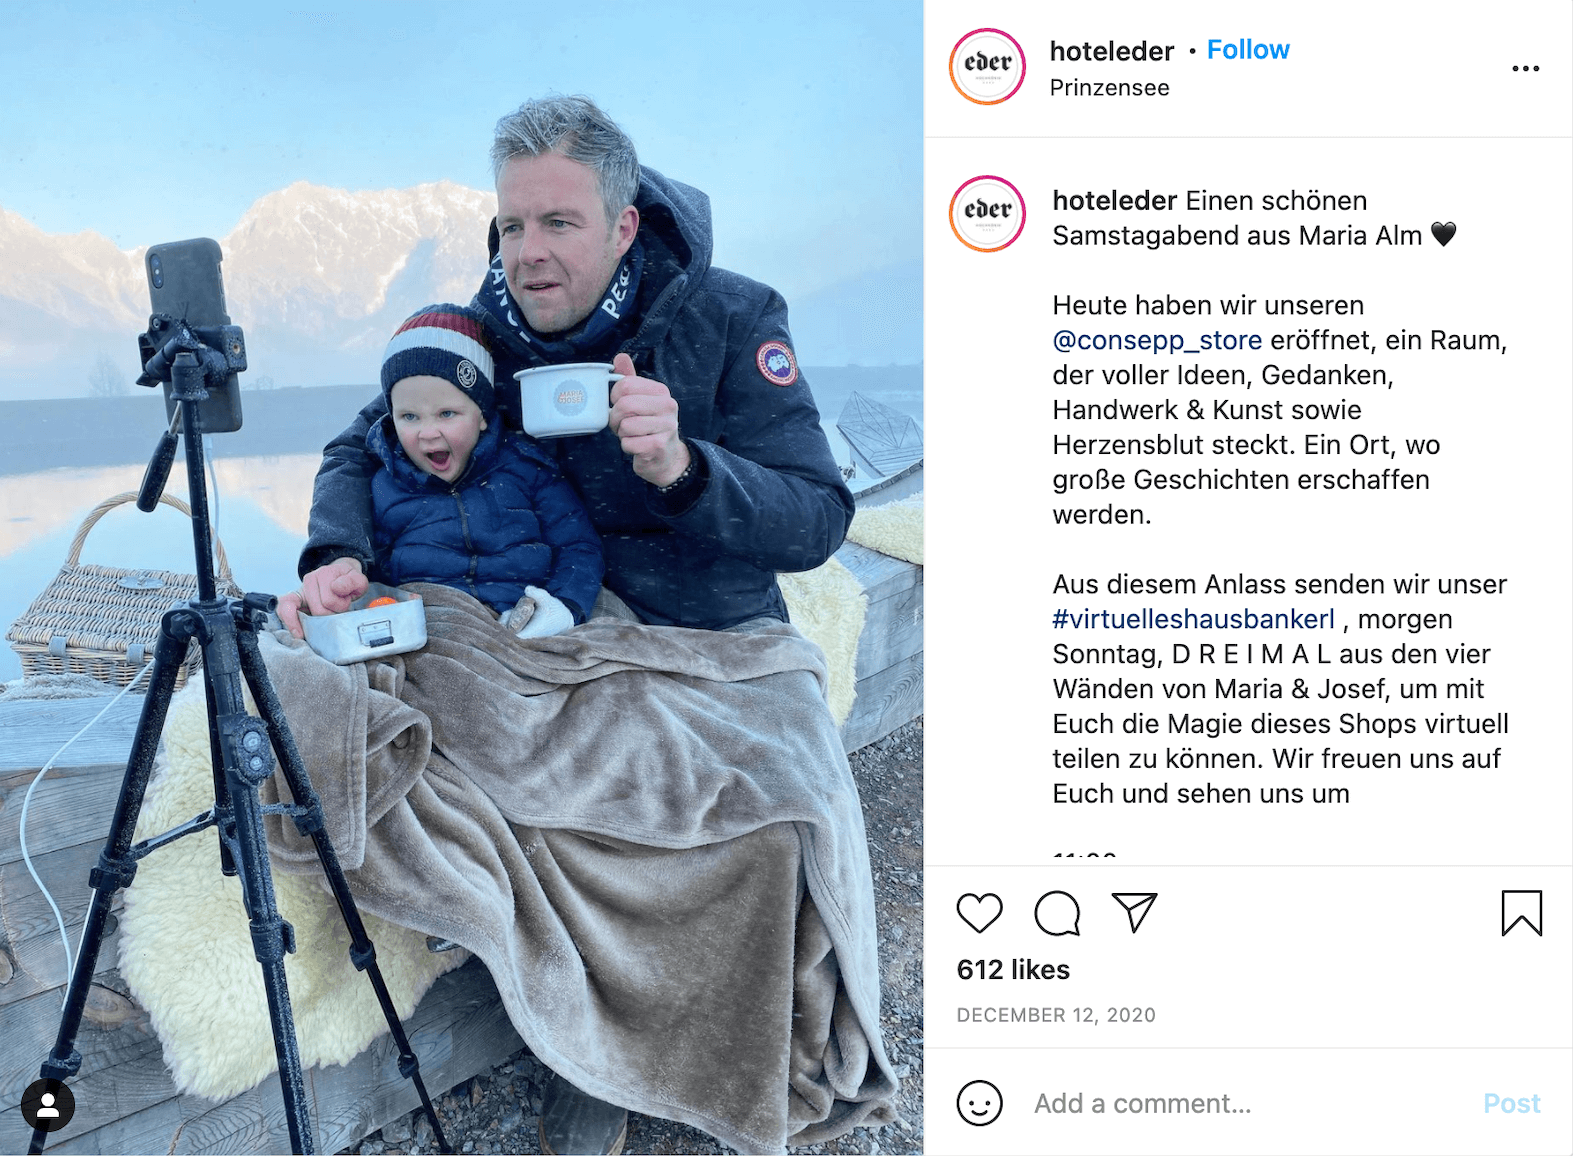 Screenshot of an Instagram post by user @hoteleder showing an adult with a child on their lap facing a smartphone held by a tripod. The two people are wrapped in a blanket and warm clothes. The adult is holding a mug. Behind them, a mountain range is visible.